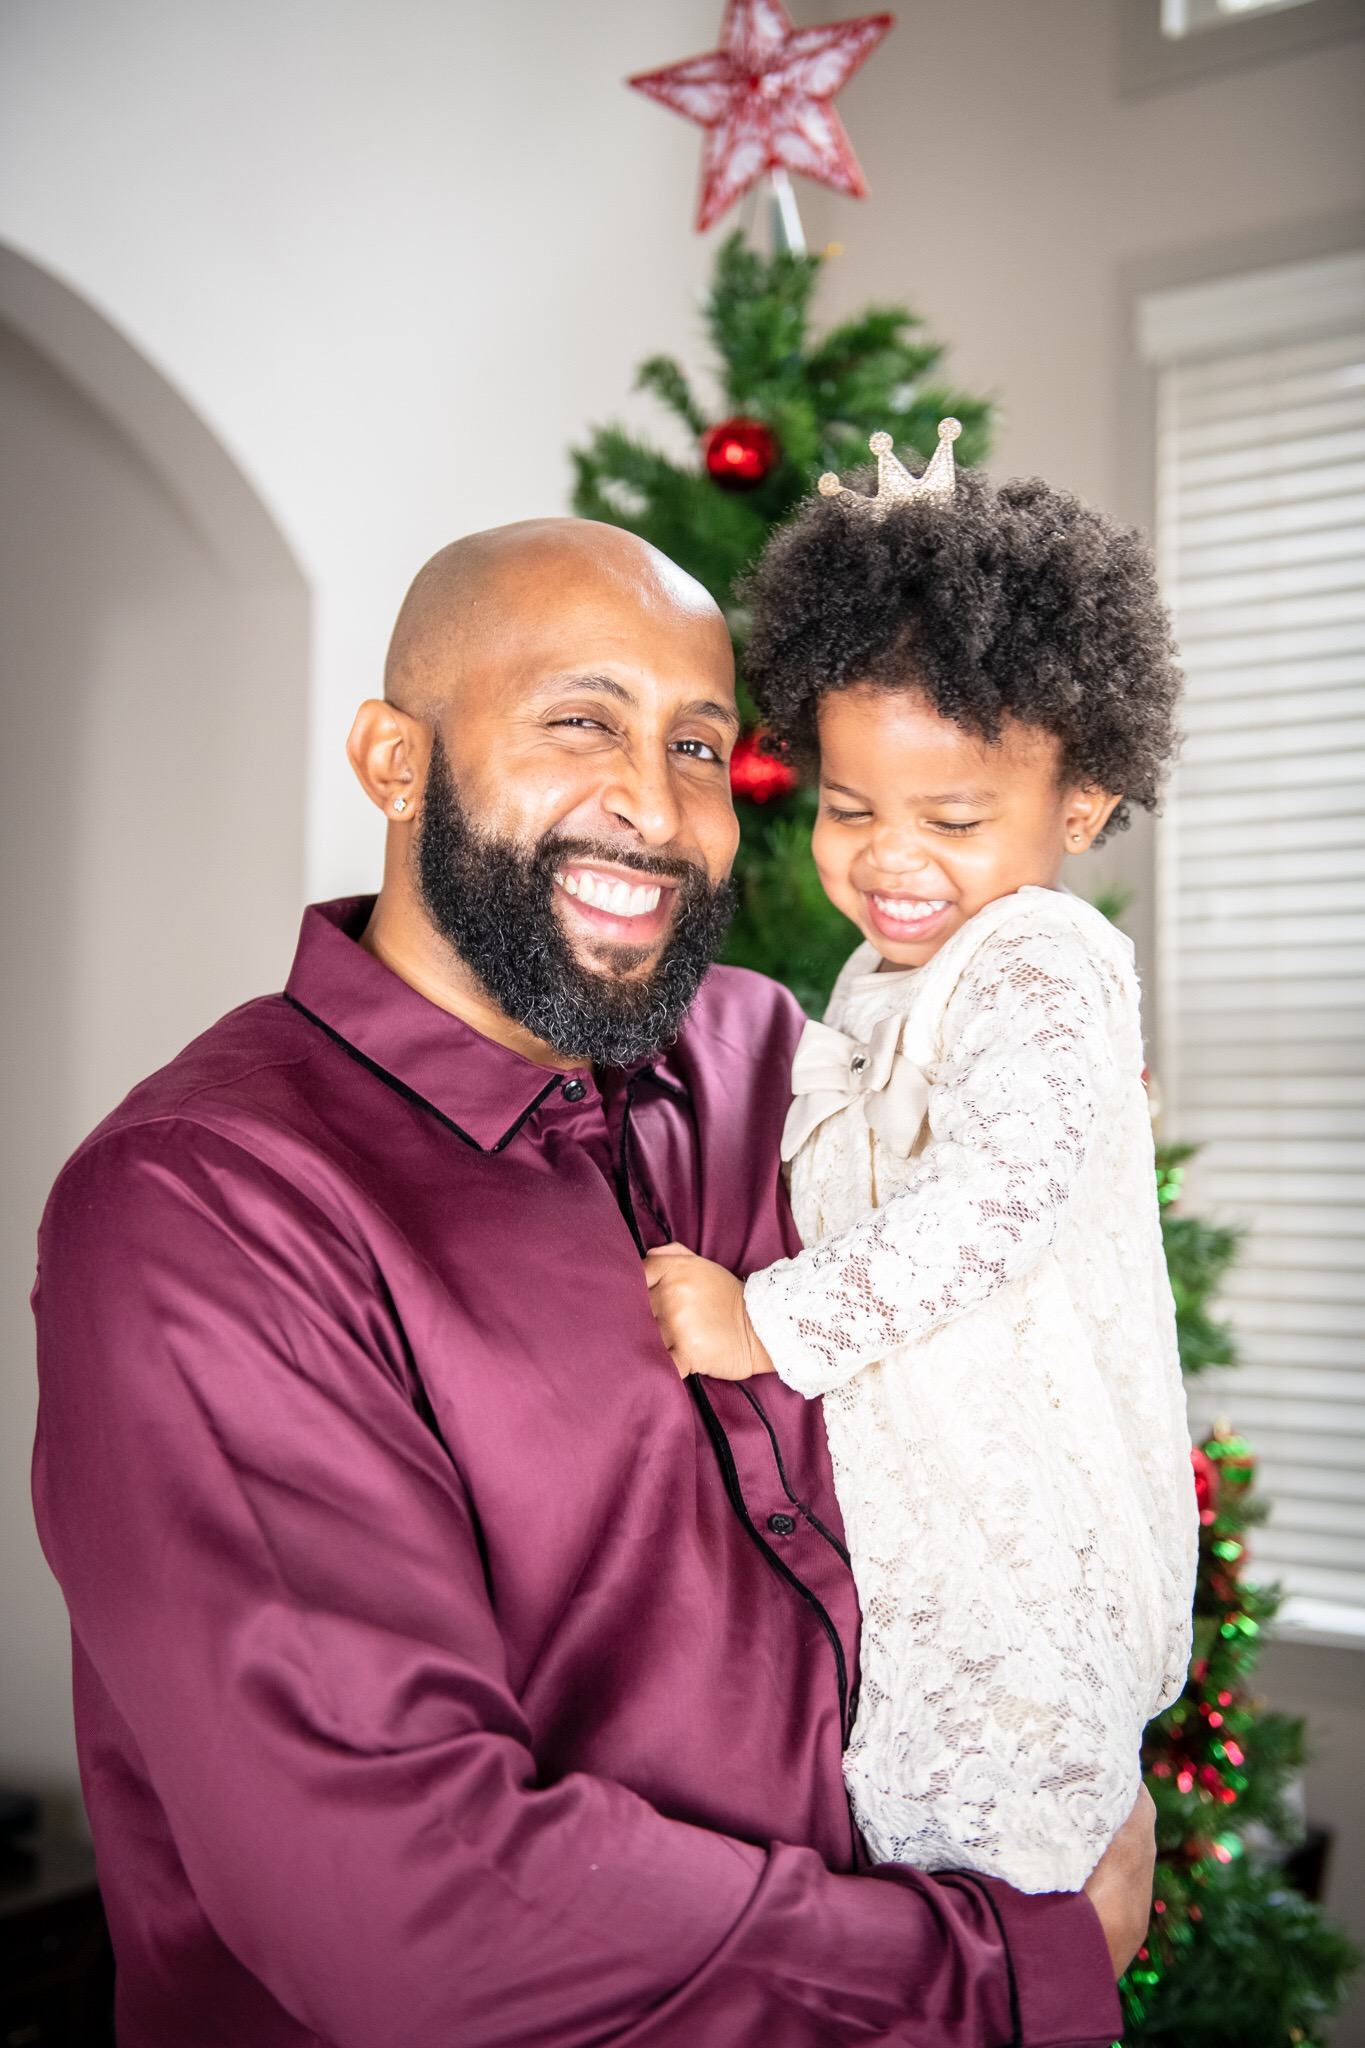 image2-2 Daddy's Girl: Father Daughter Holiday Photos We Love